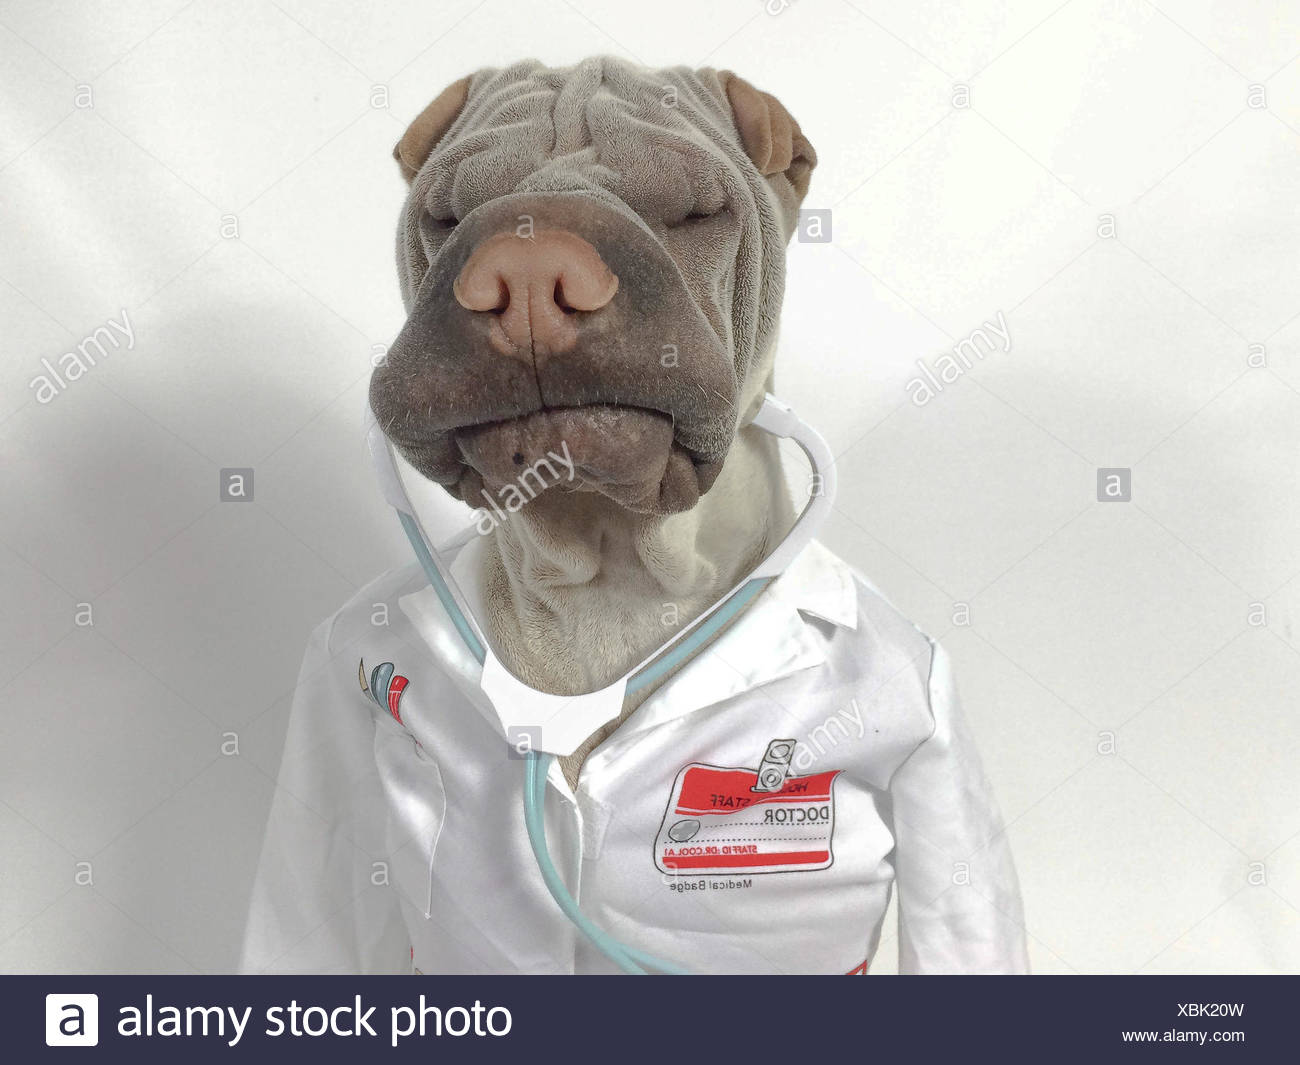 Shar pei dressed up as doctor - Stock Image